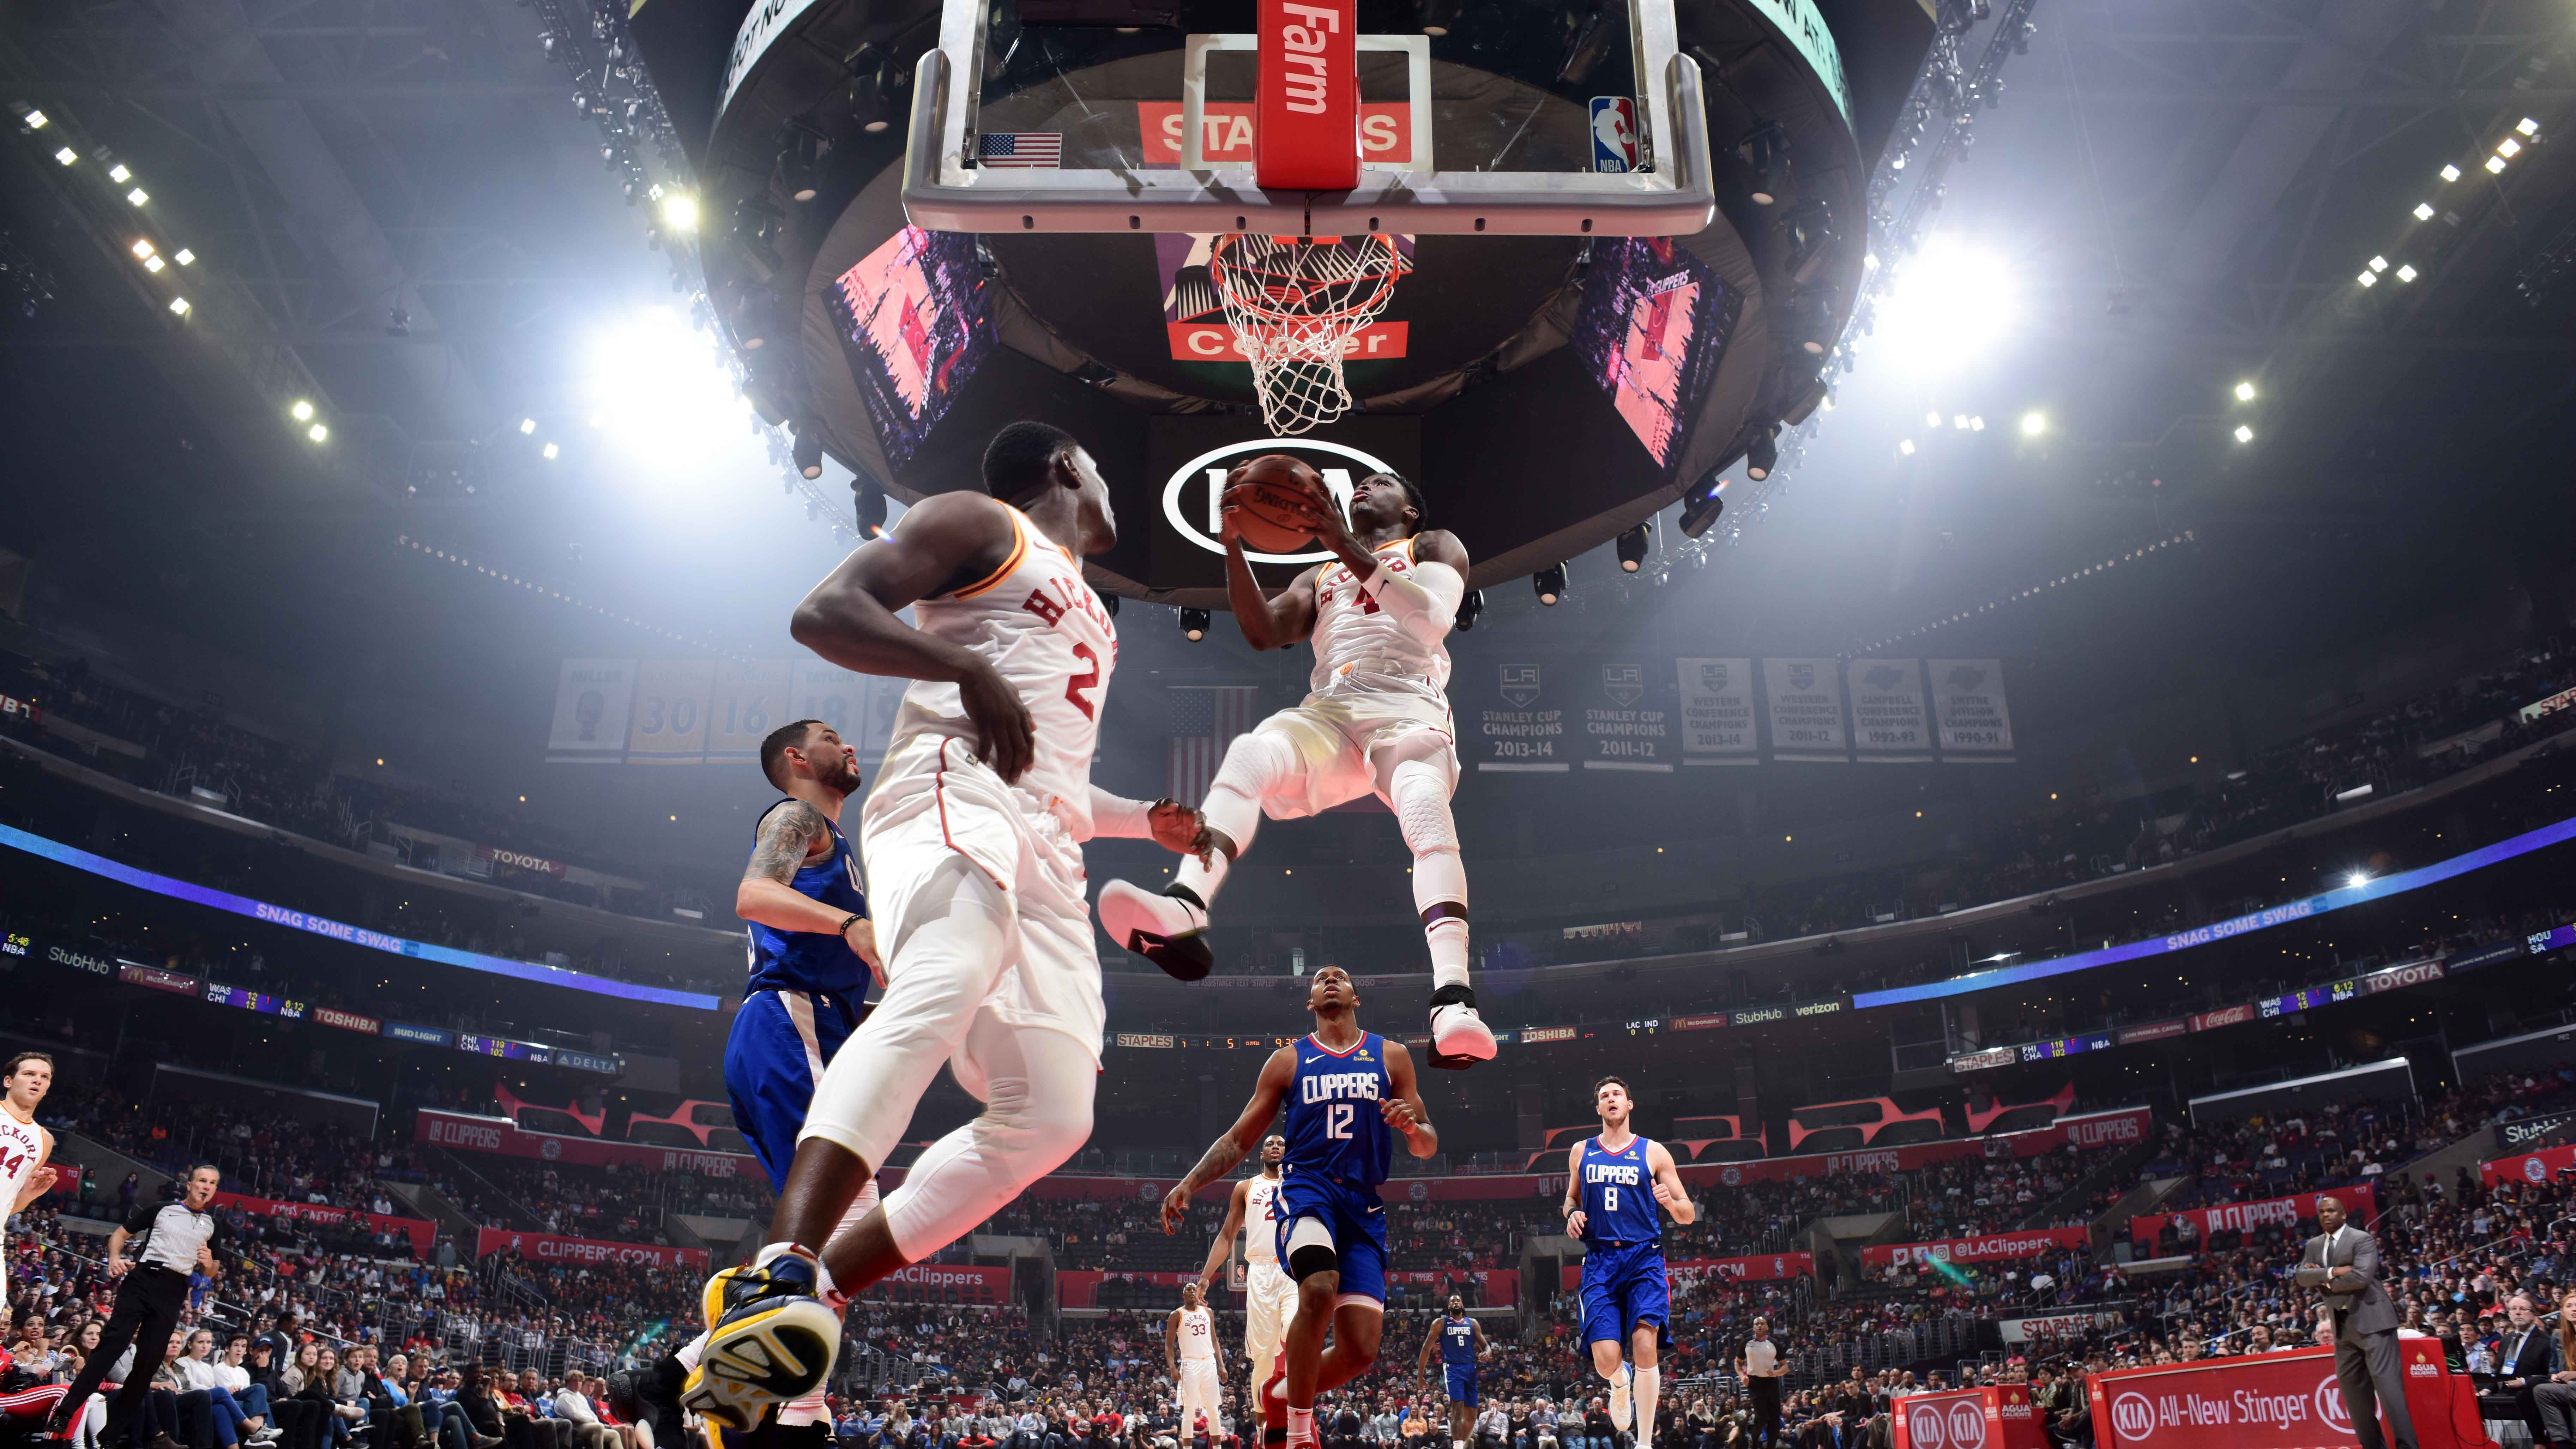 GAME RECAP: Pacers 111, Clippers 104